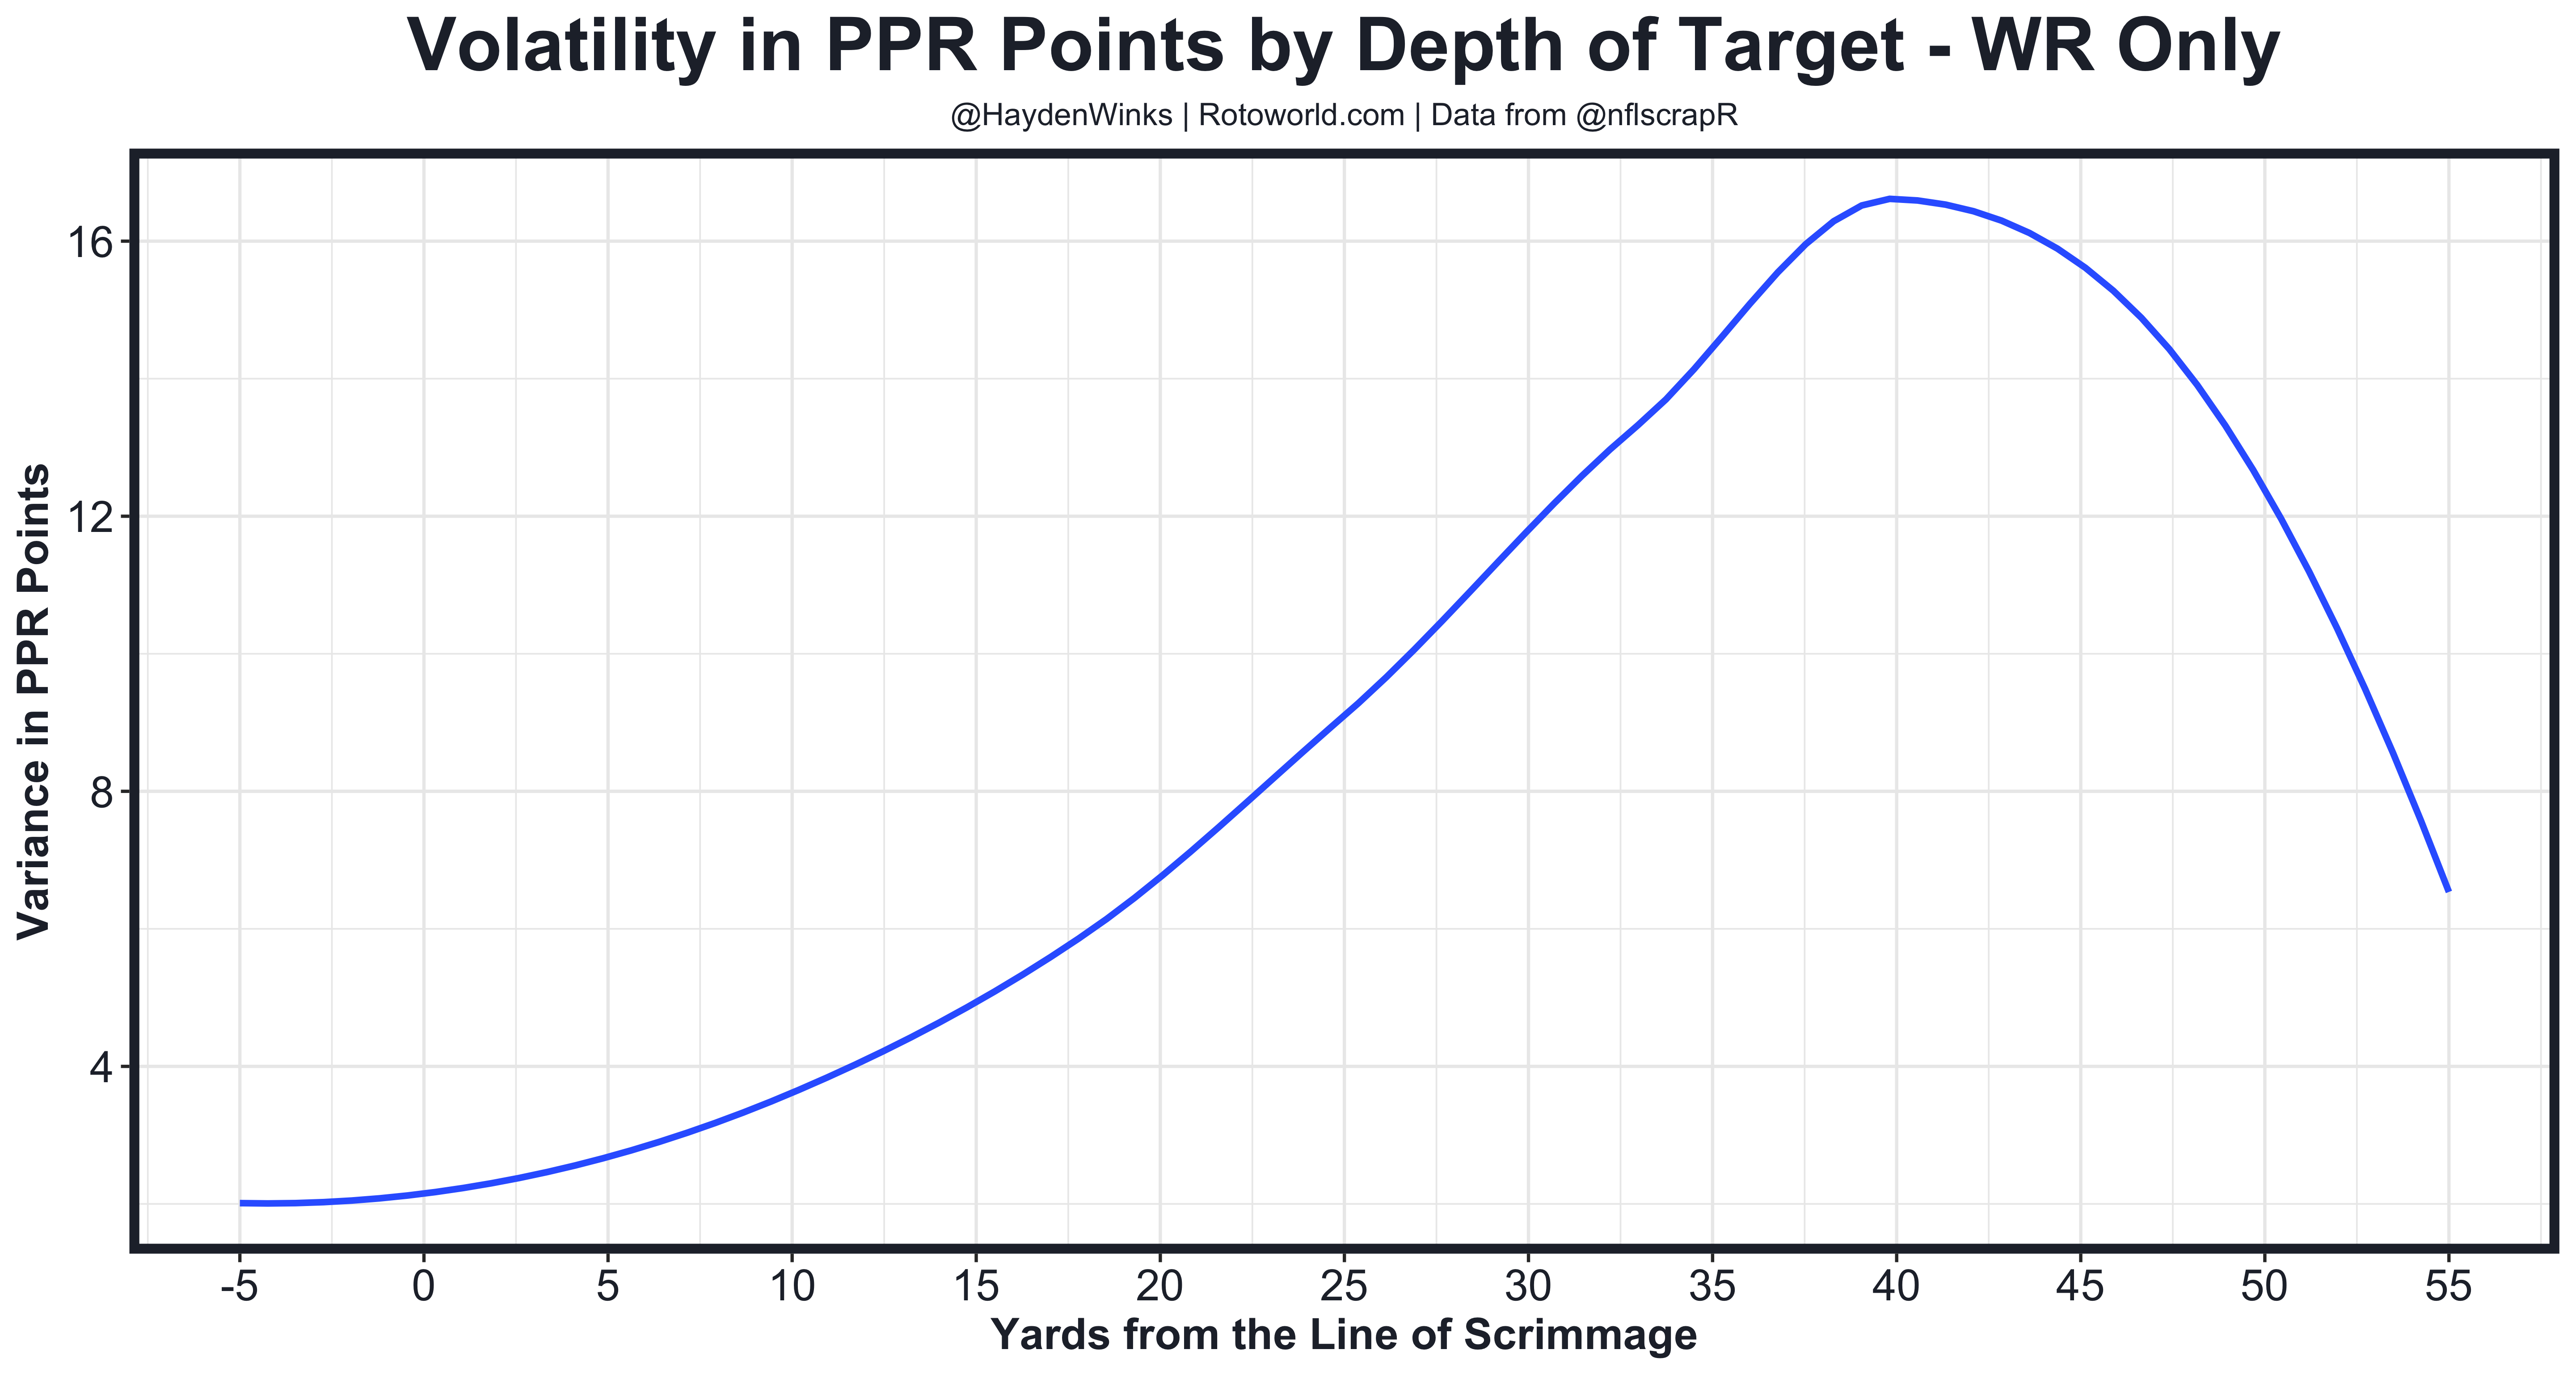 WR Depth Variance